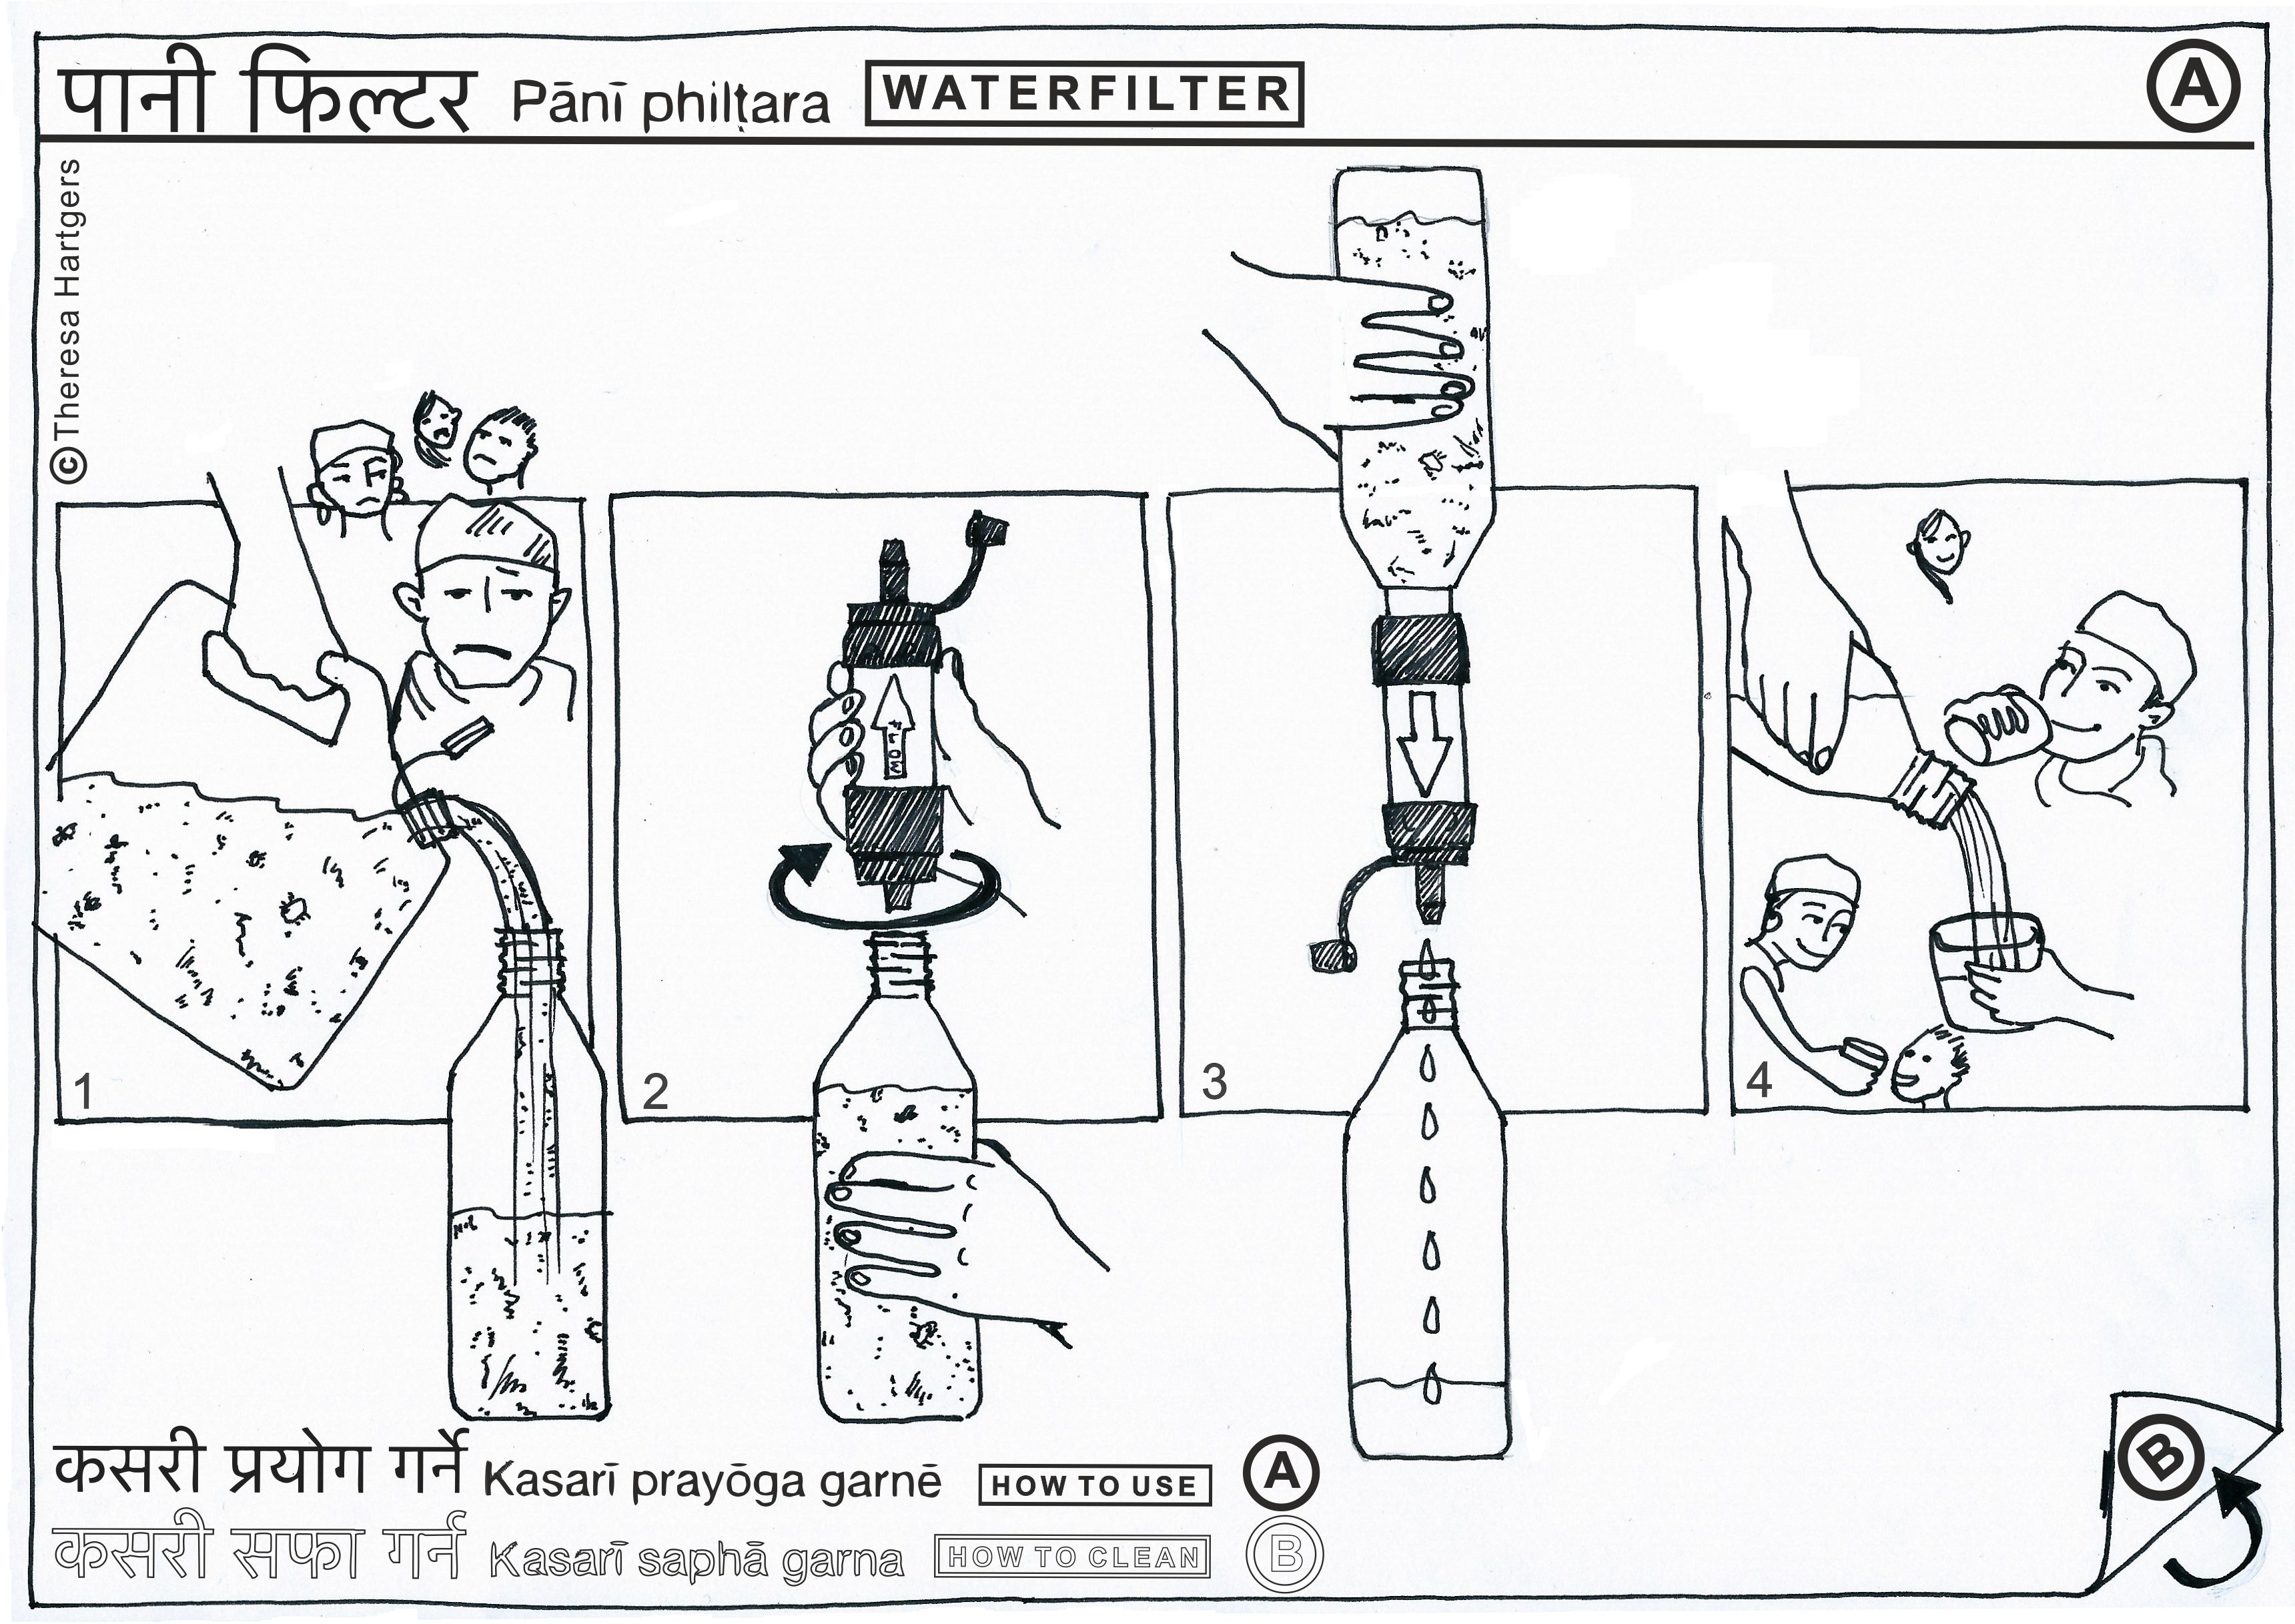 waterfilter manual theresa illustrator A